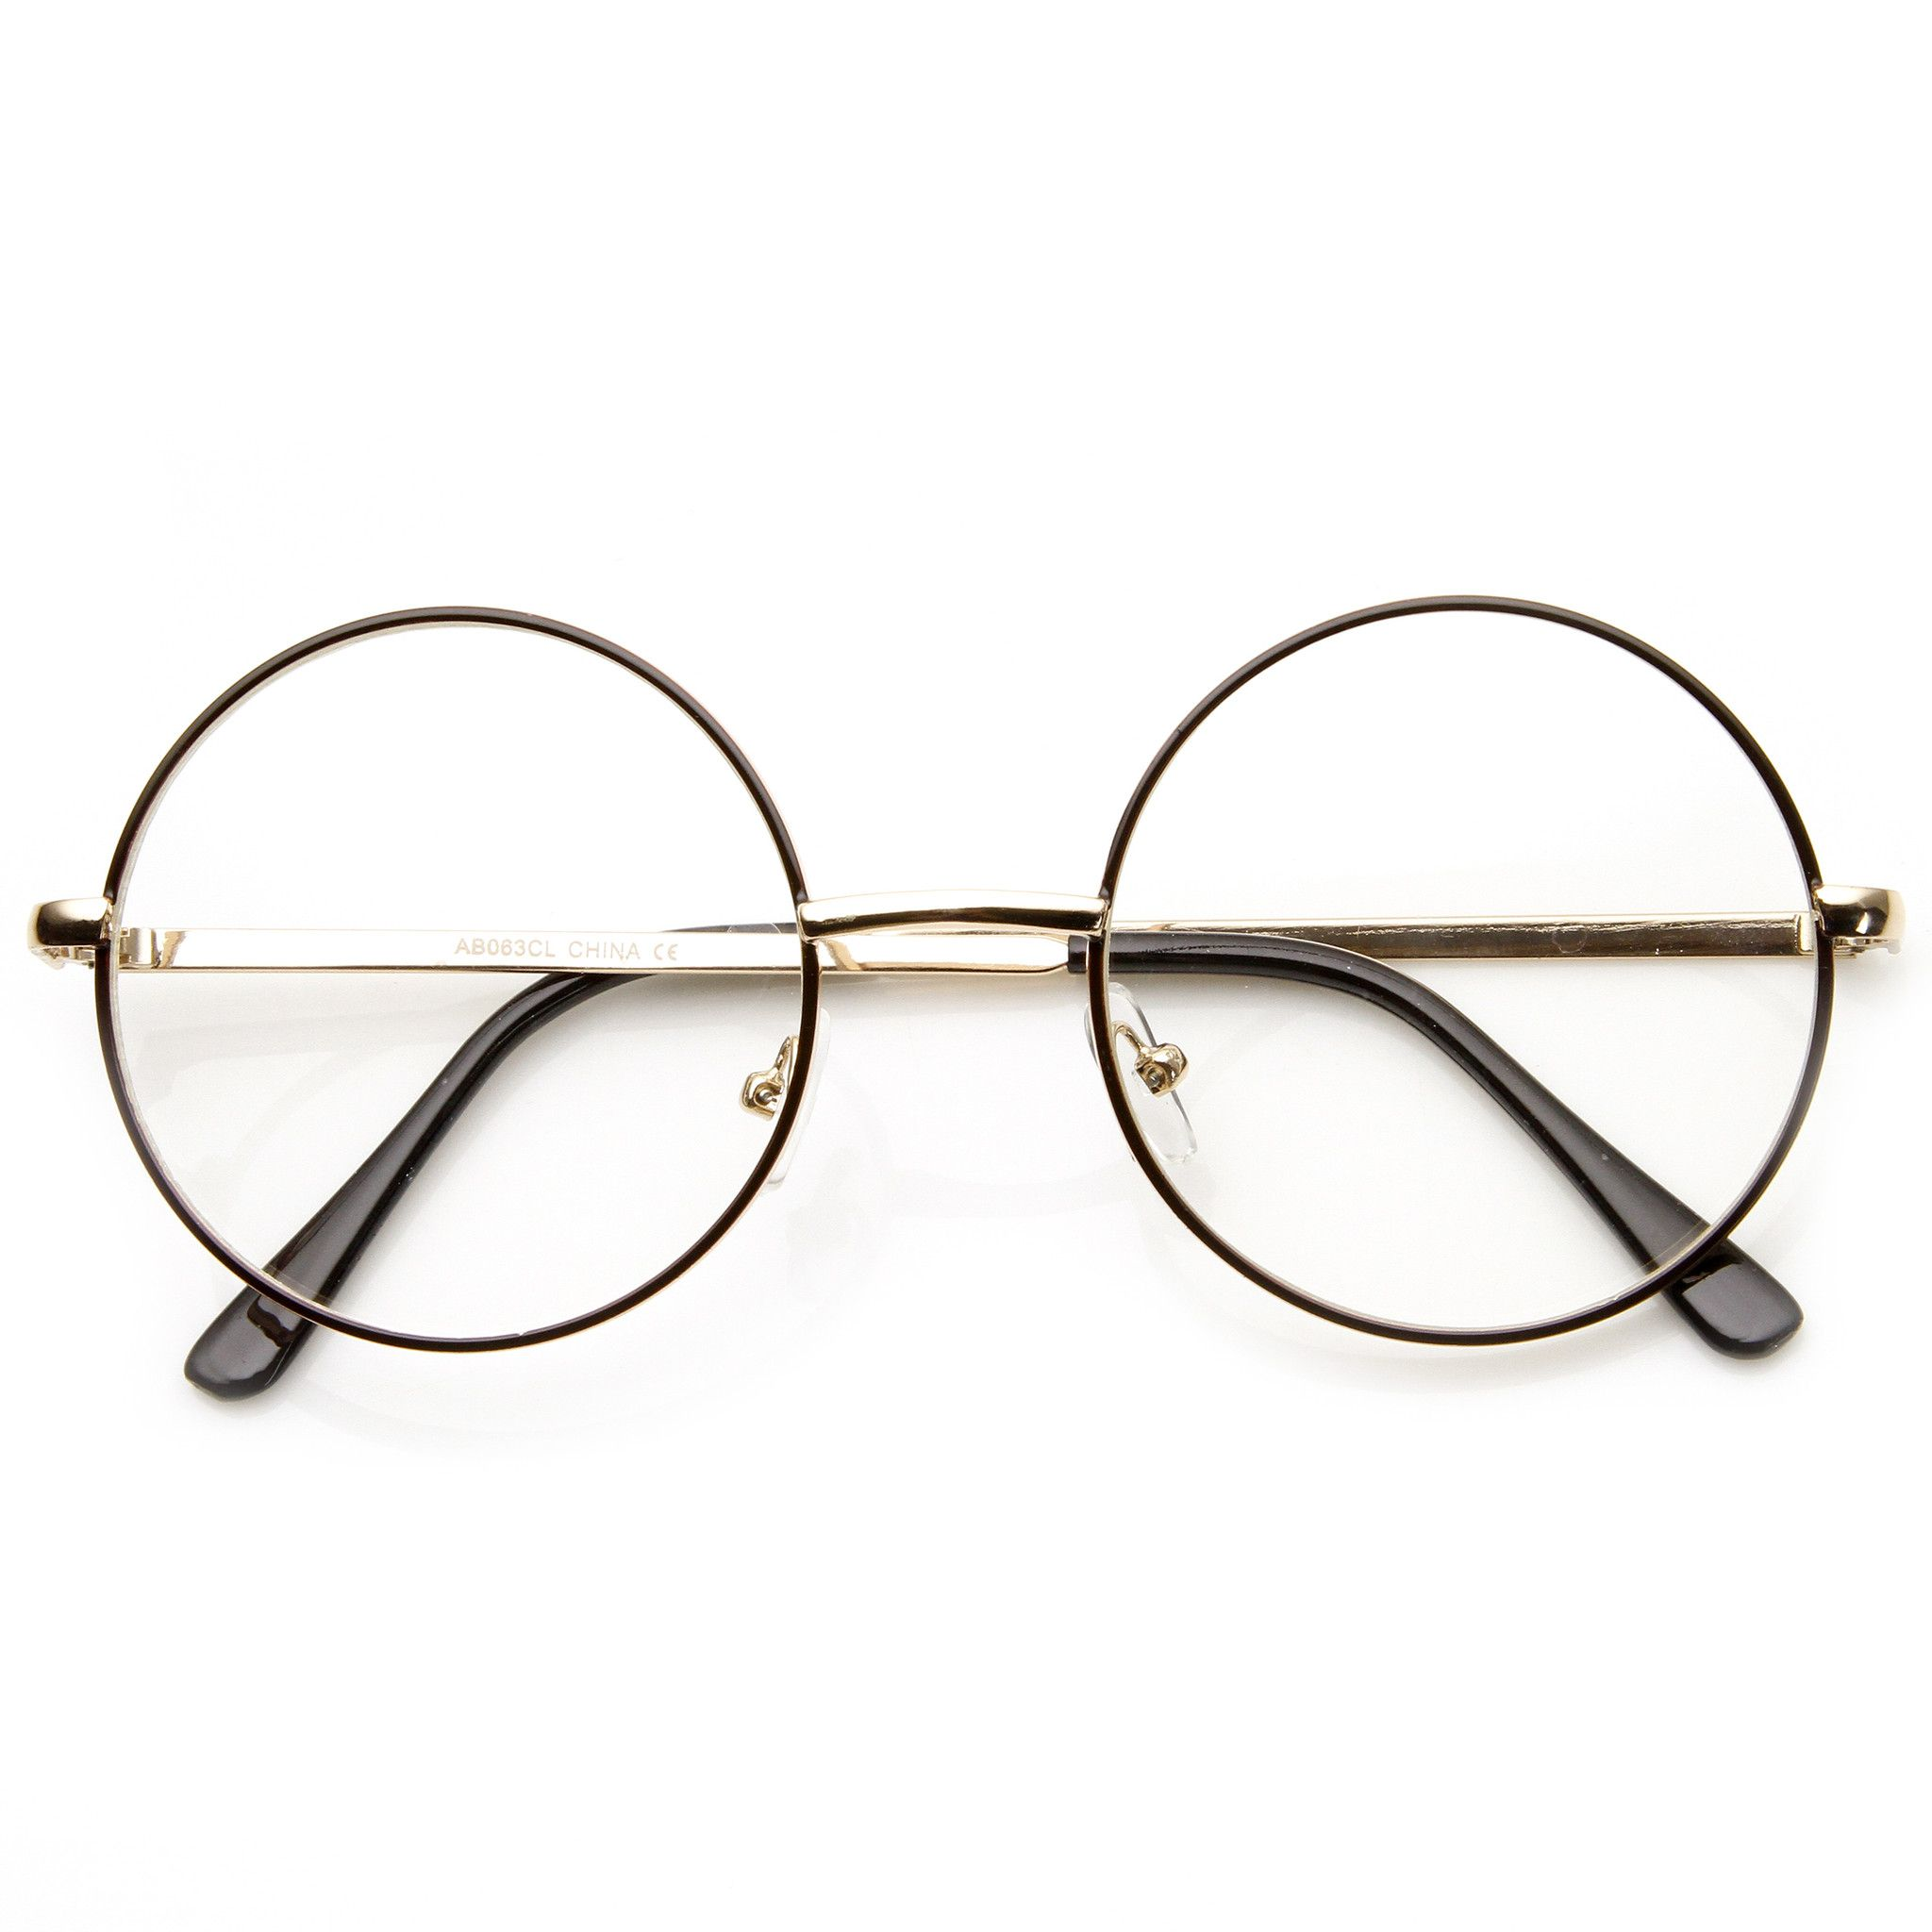 Vintage Lennon Inspired Clear Lens Round Frame Glasses 9222 | men ...